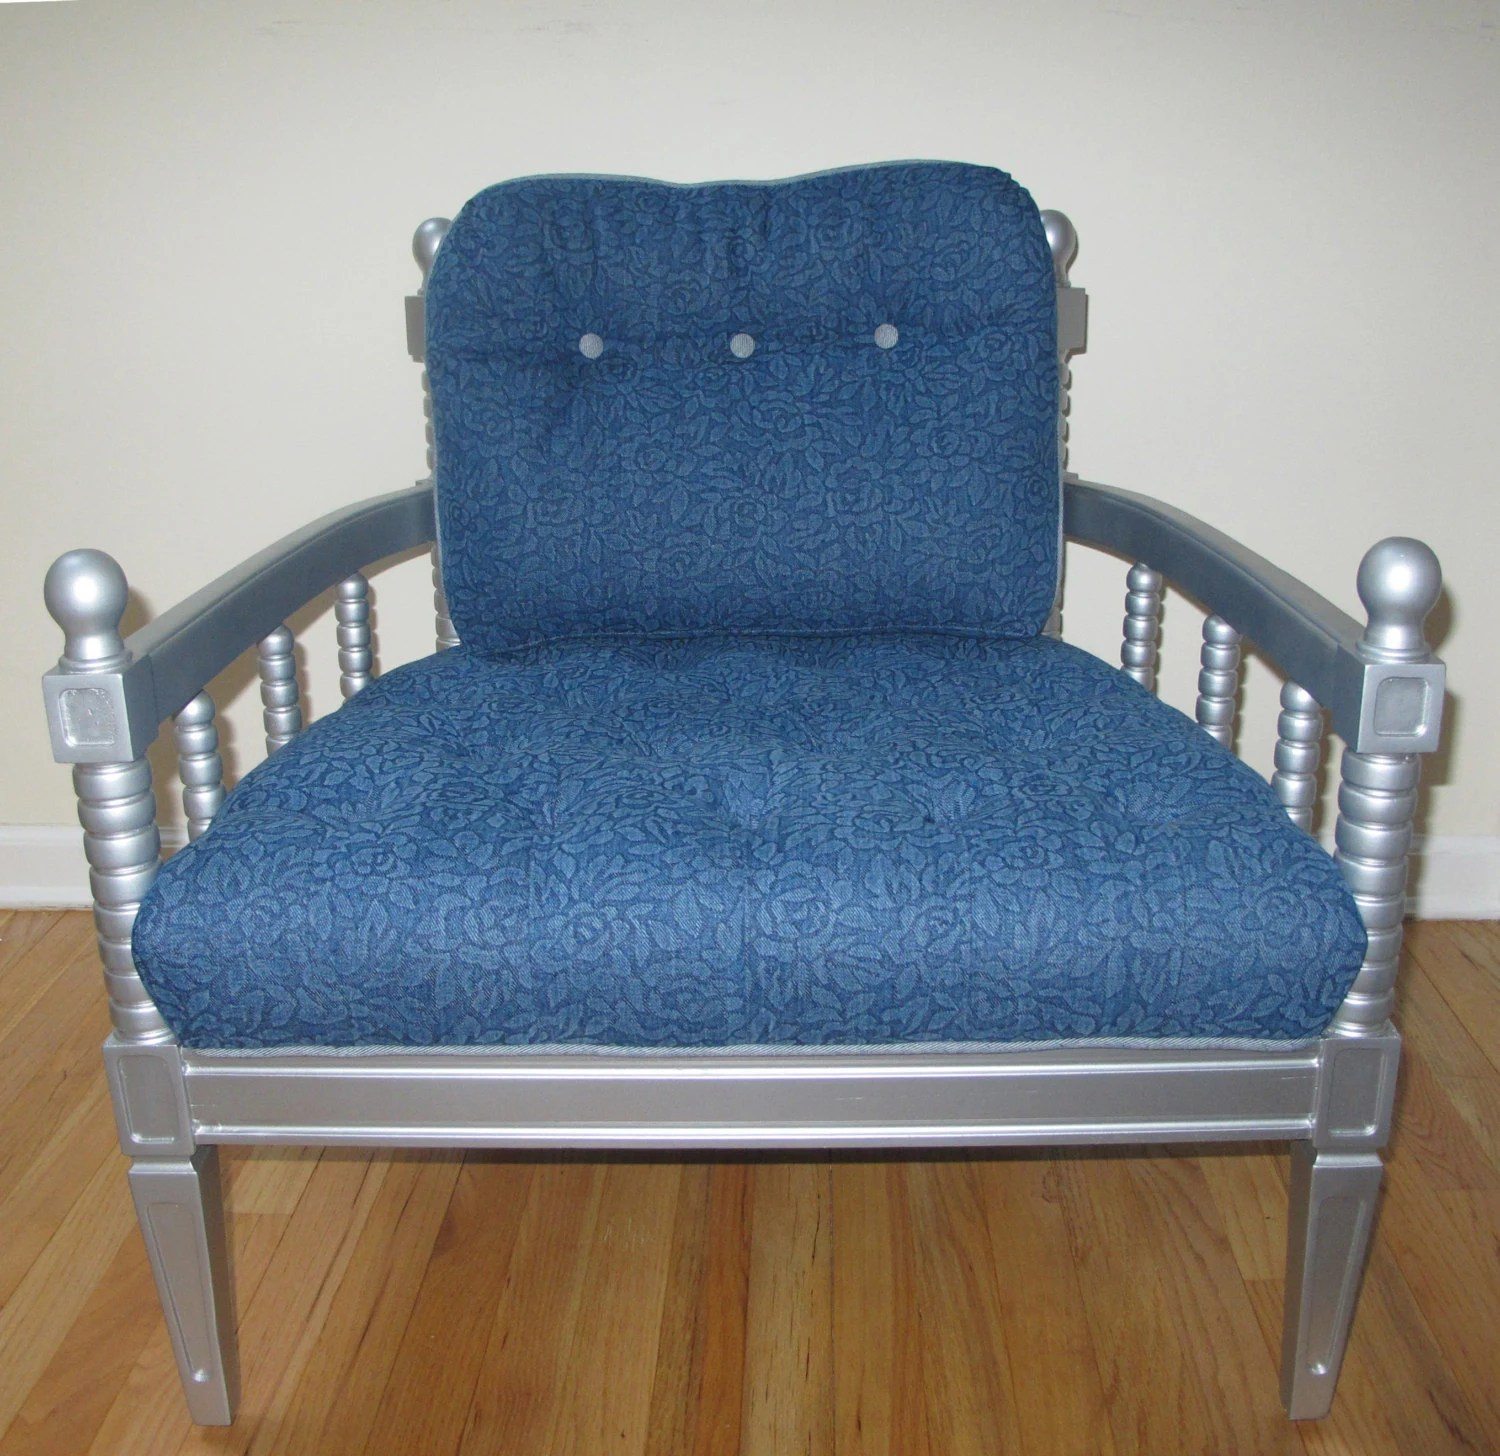 Denim Chair Vintage Denim Throne Chair With Silver Frame By